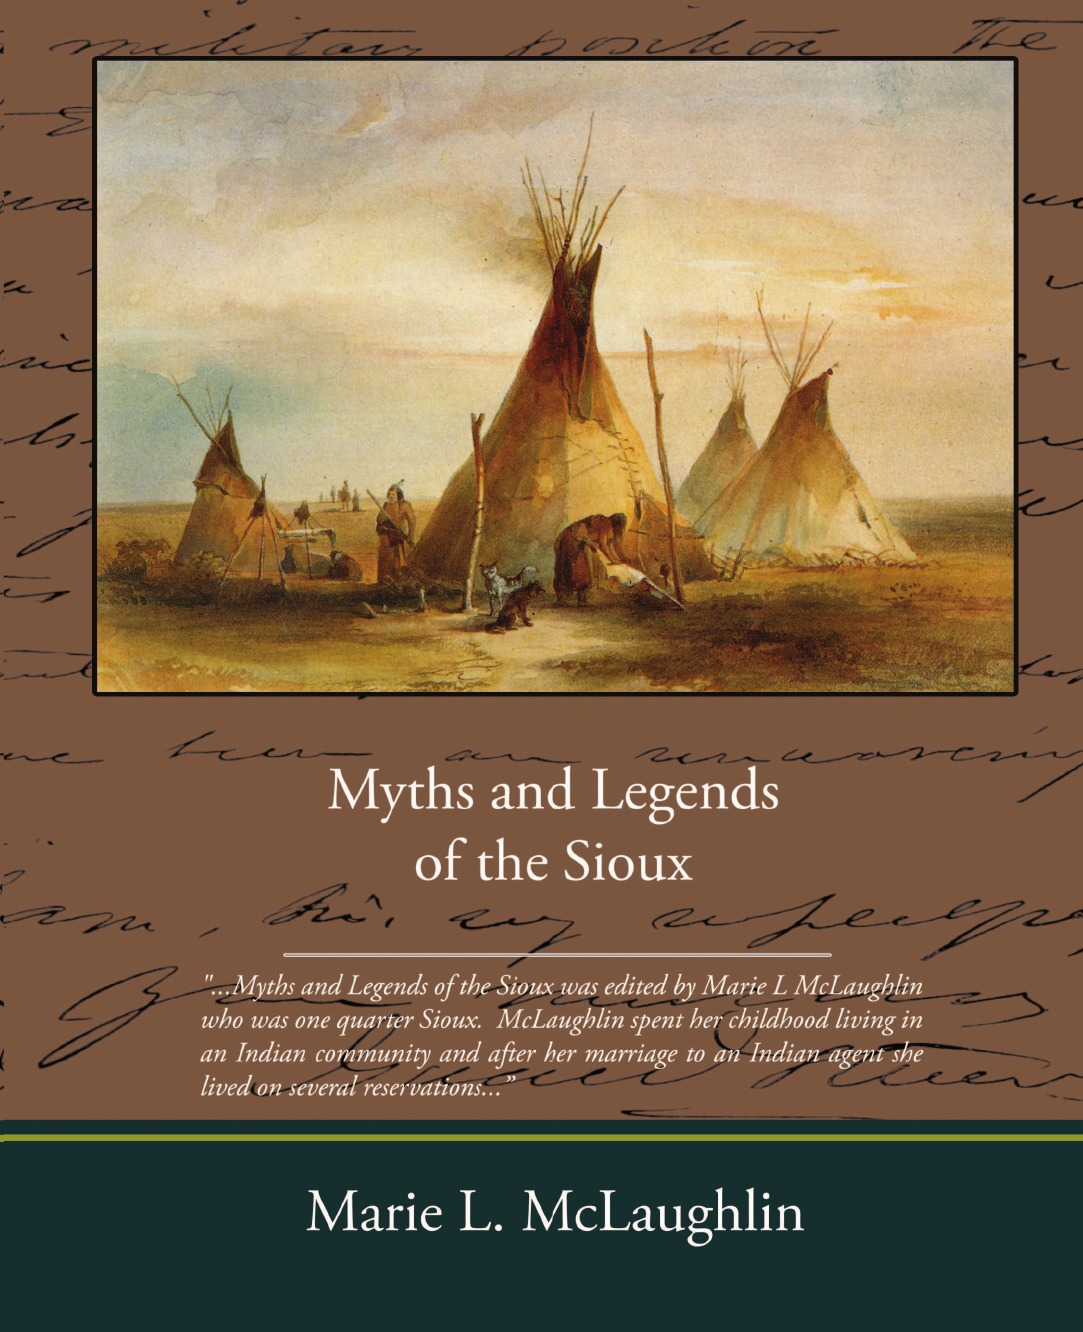 Marie L. McLaughlin Myths and Legends of the Sioux аккумуляторный блок bosch pba 18в 6а ч 1 600 a00 dd7 18в 6ач li ion